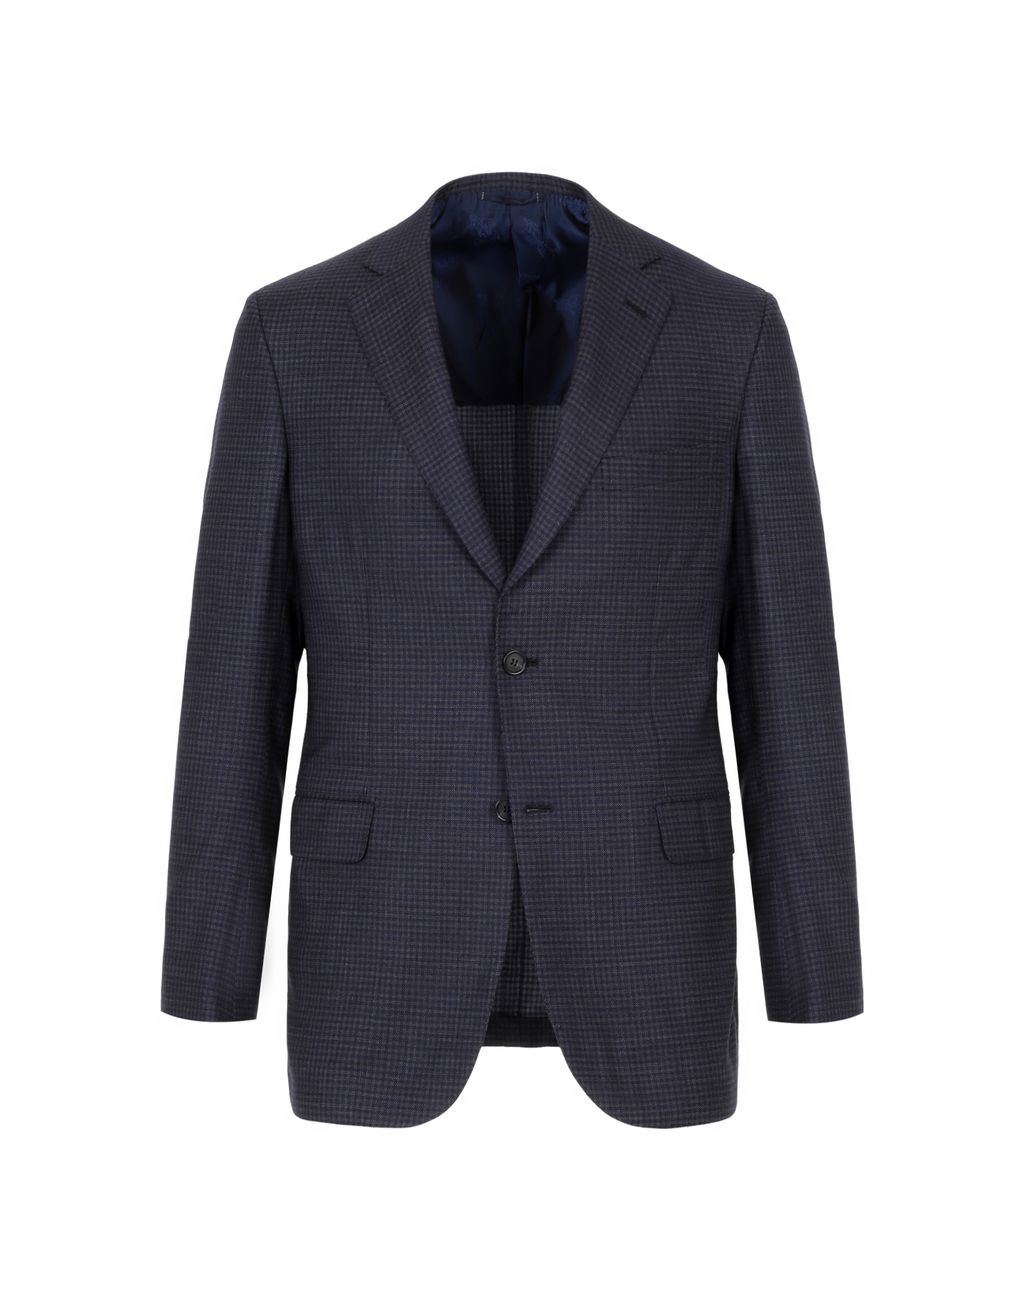 BRIONI Blue and Grey Micro-Check Ventiquattro Ravello Jacket Suits & Jackets Man f